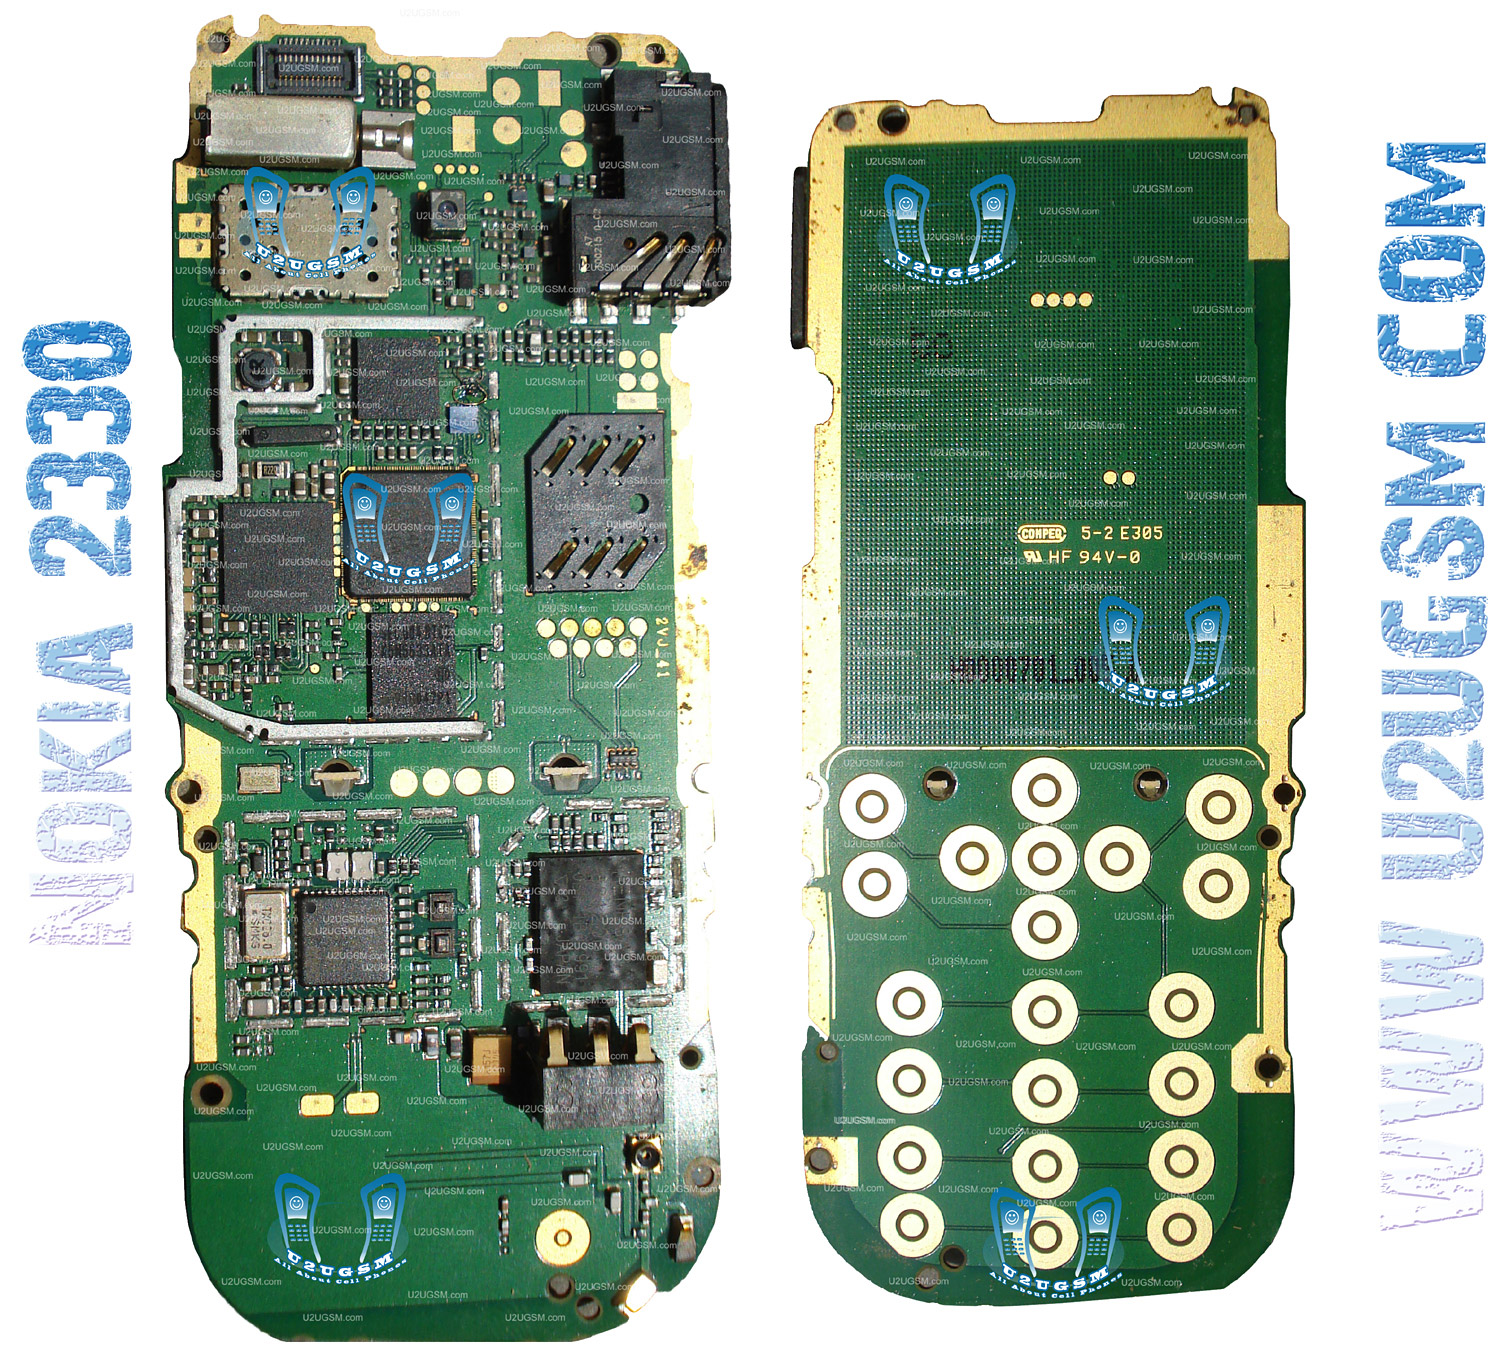 hight resolution of nokia 2330 classic full pcb diagram mother board layout mobile nokia 1200 full pcb diagram mother board nokia 1110 layout diagram of